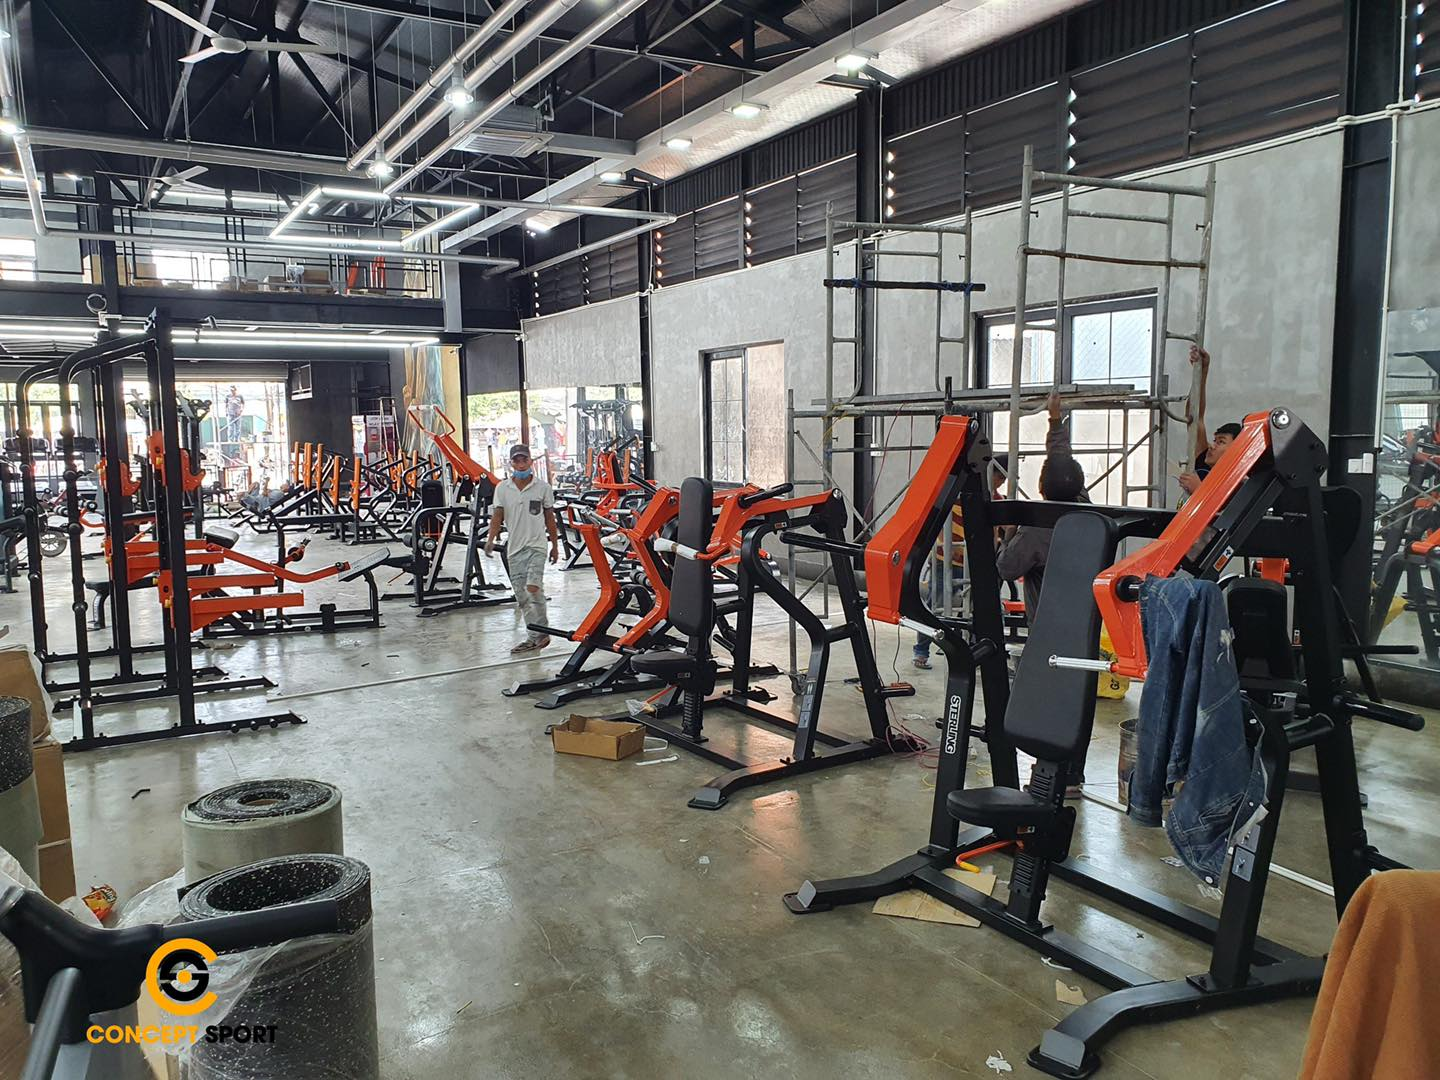 setup phòng gym OUR LATEST PROJECT - KIẾN GYM 4